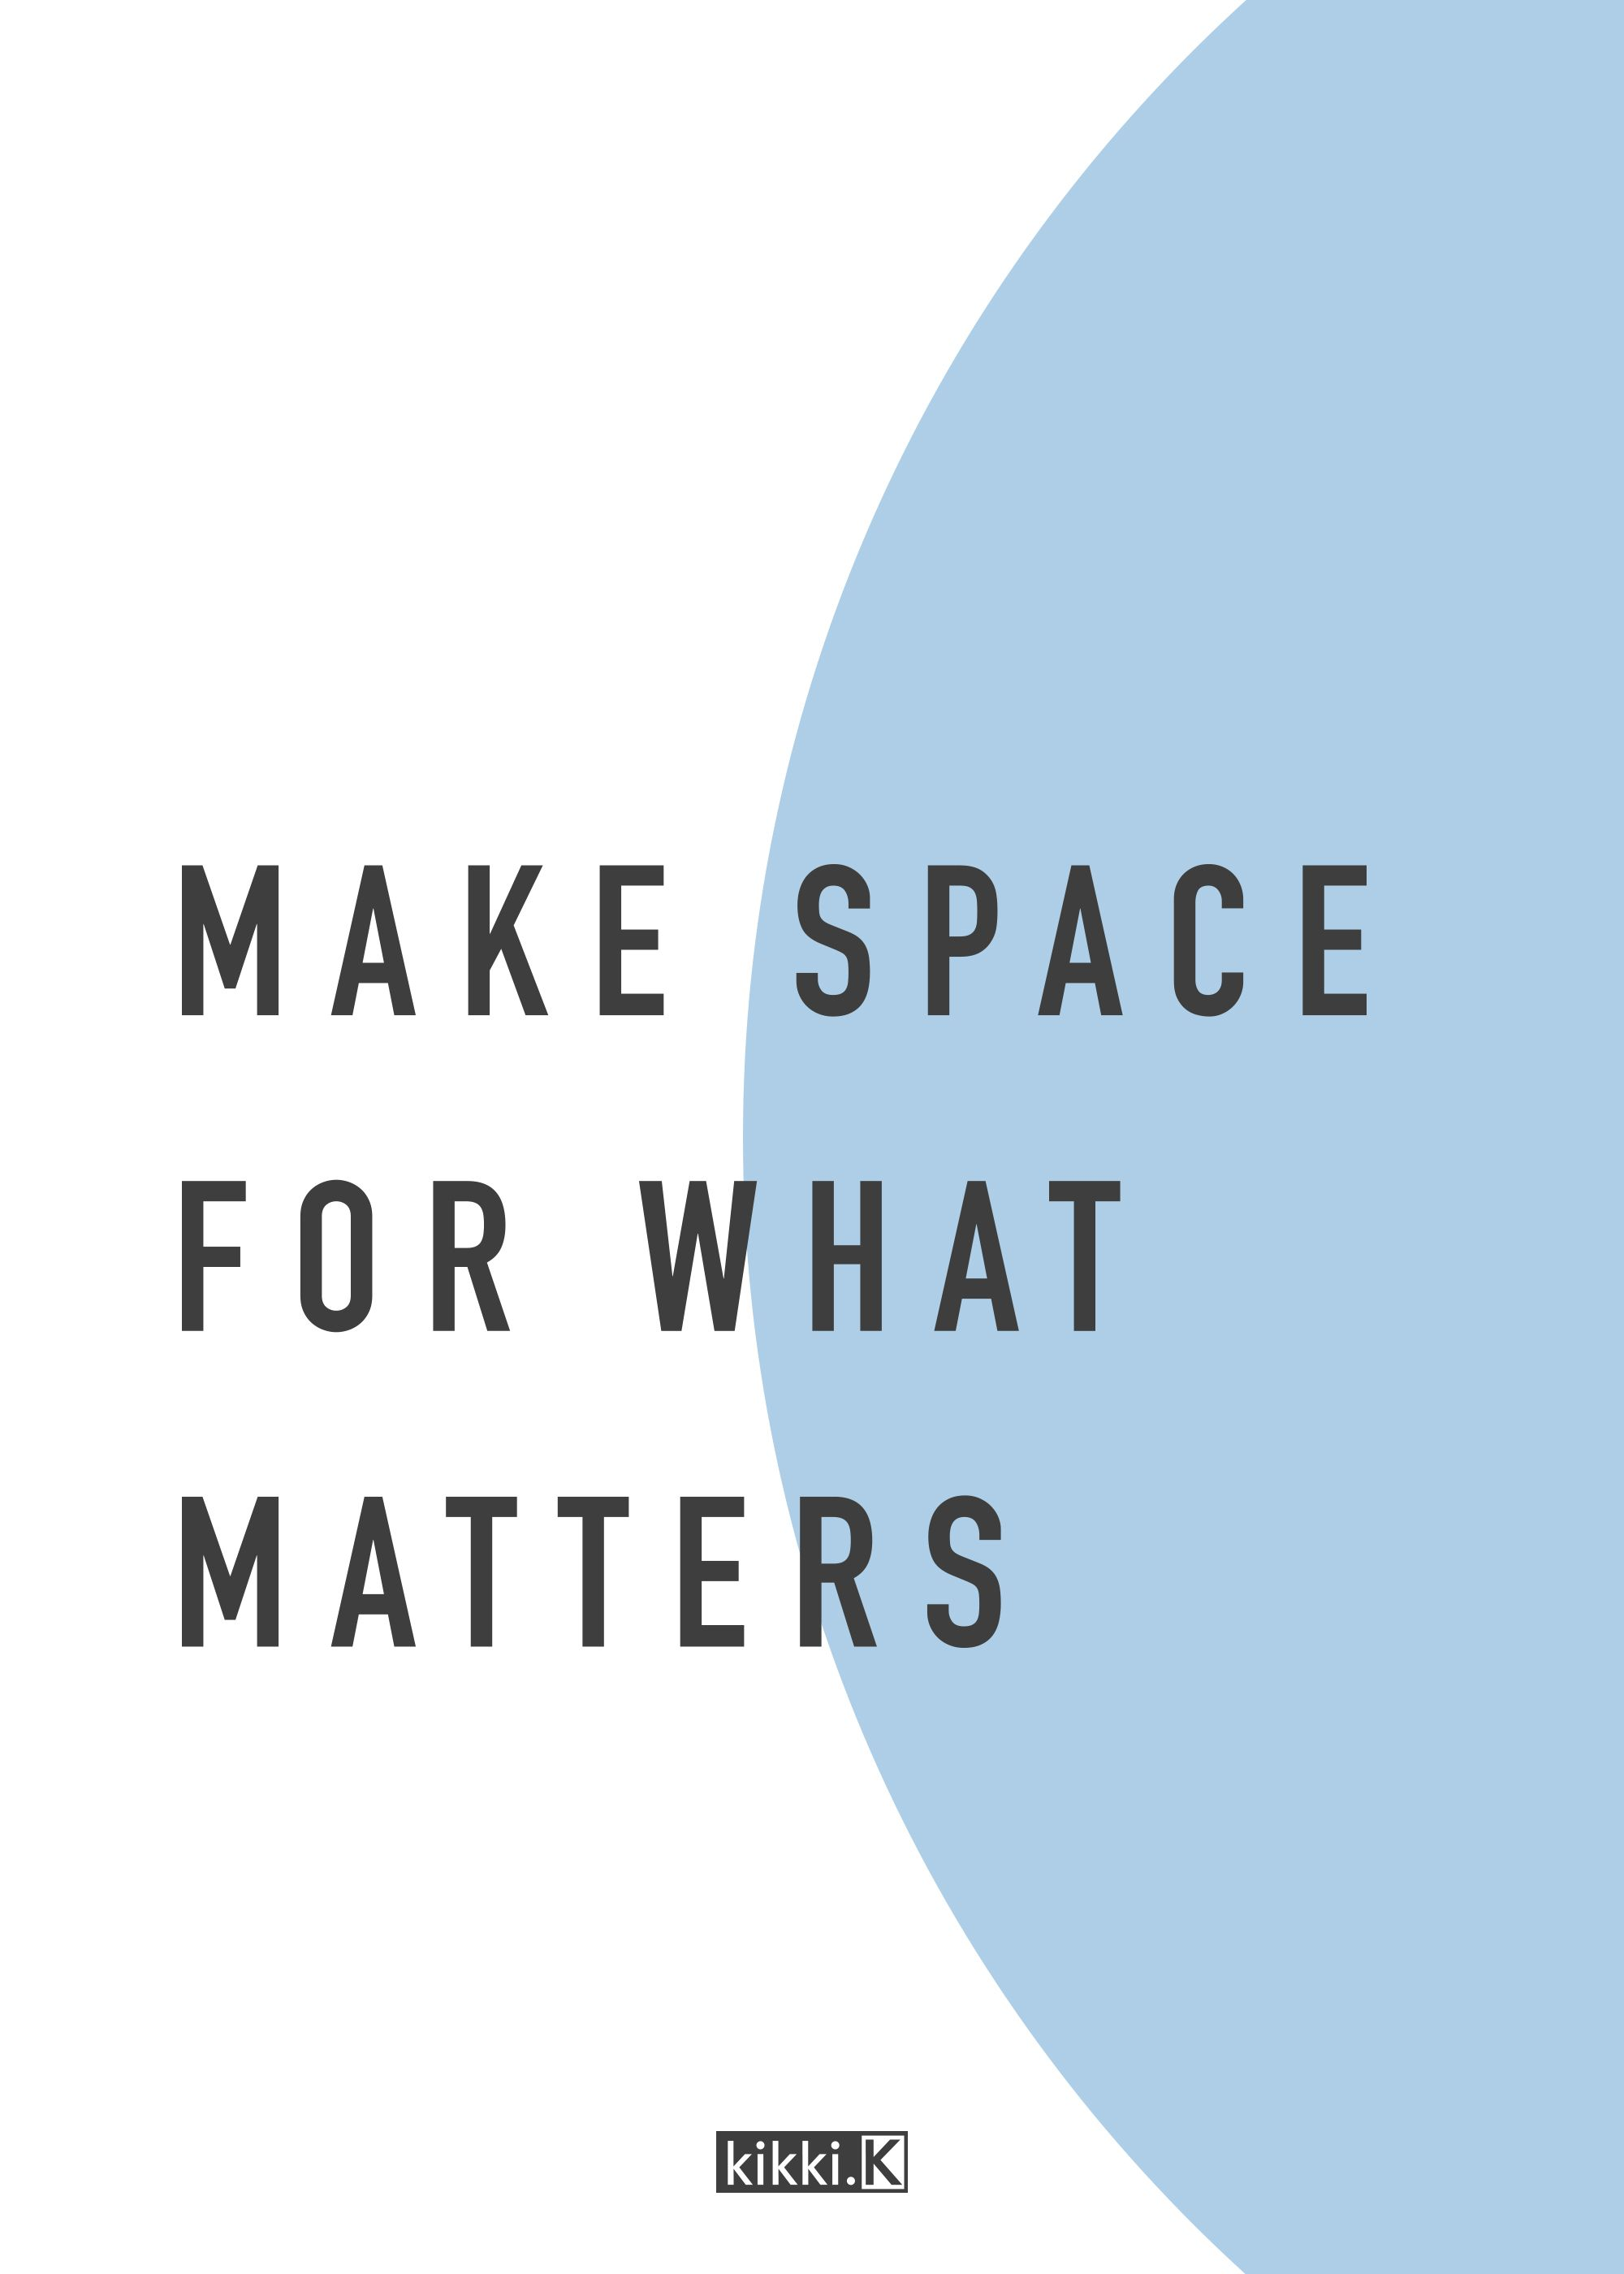 Simplify Life Quotes Inspiring Quote Make Space For What Matterswhether You Make